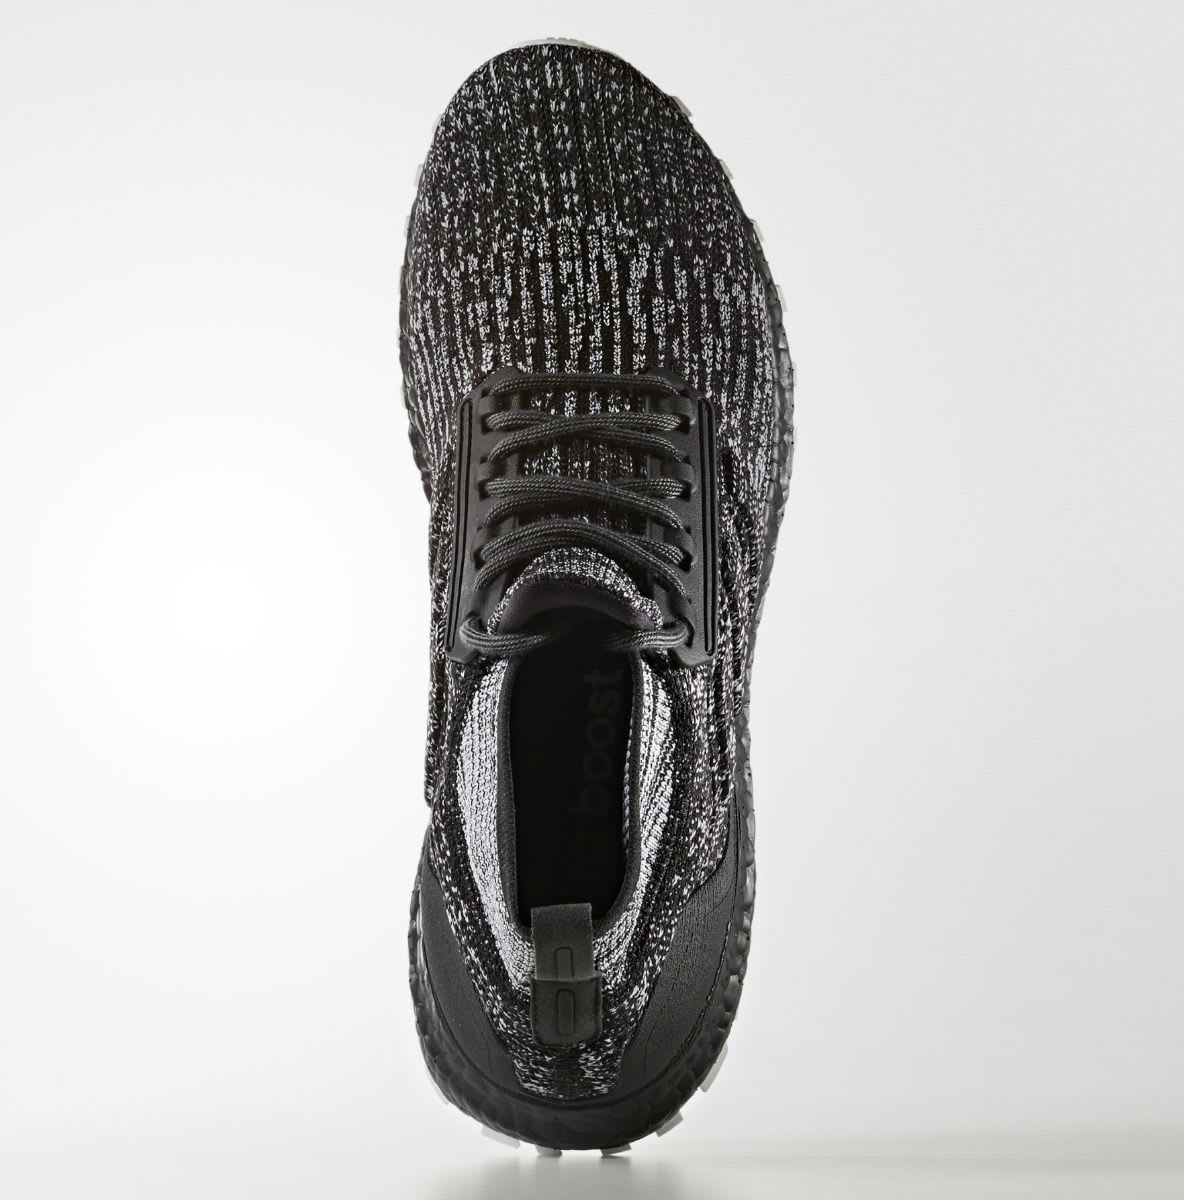 Adidas Ultra Boost ATR Mid Oreo Black White Release Date Top